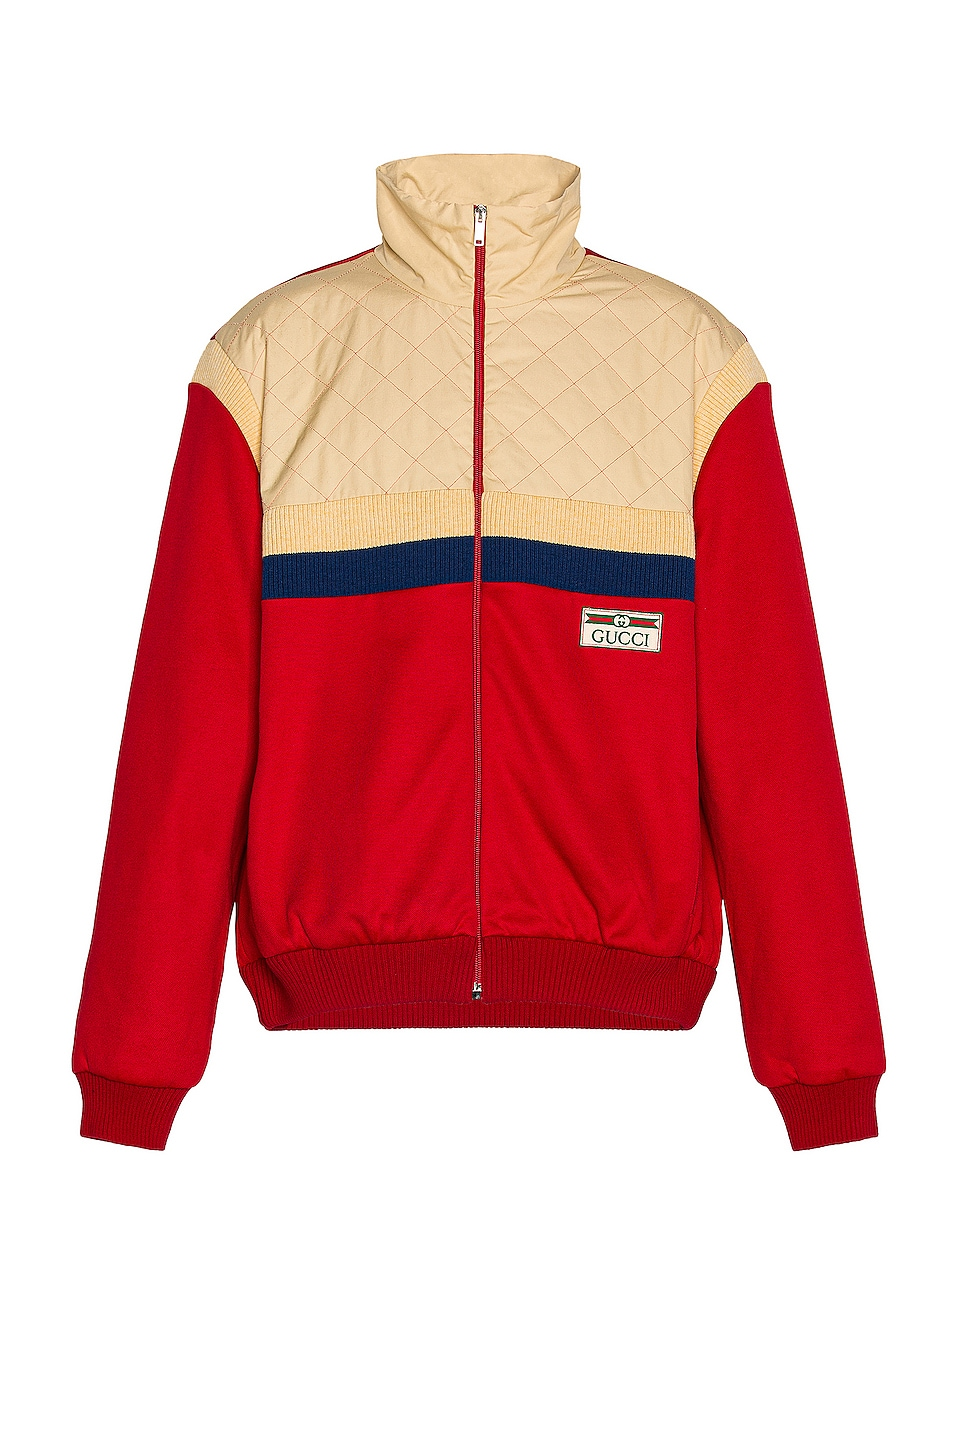 Image 1 of Gucci Track Jacket in Live Red & Ivory P & Mix